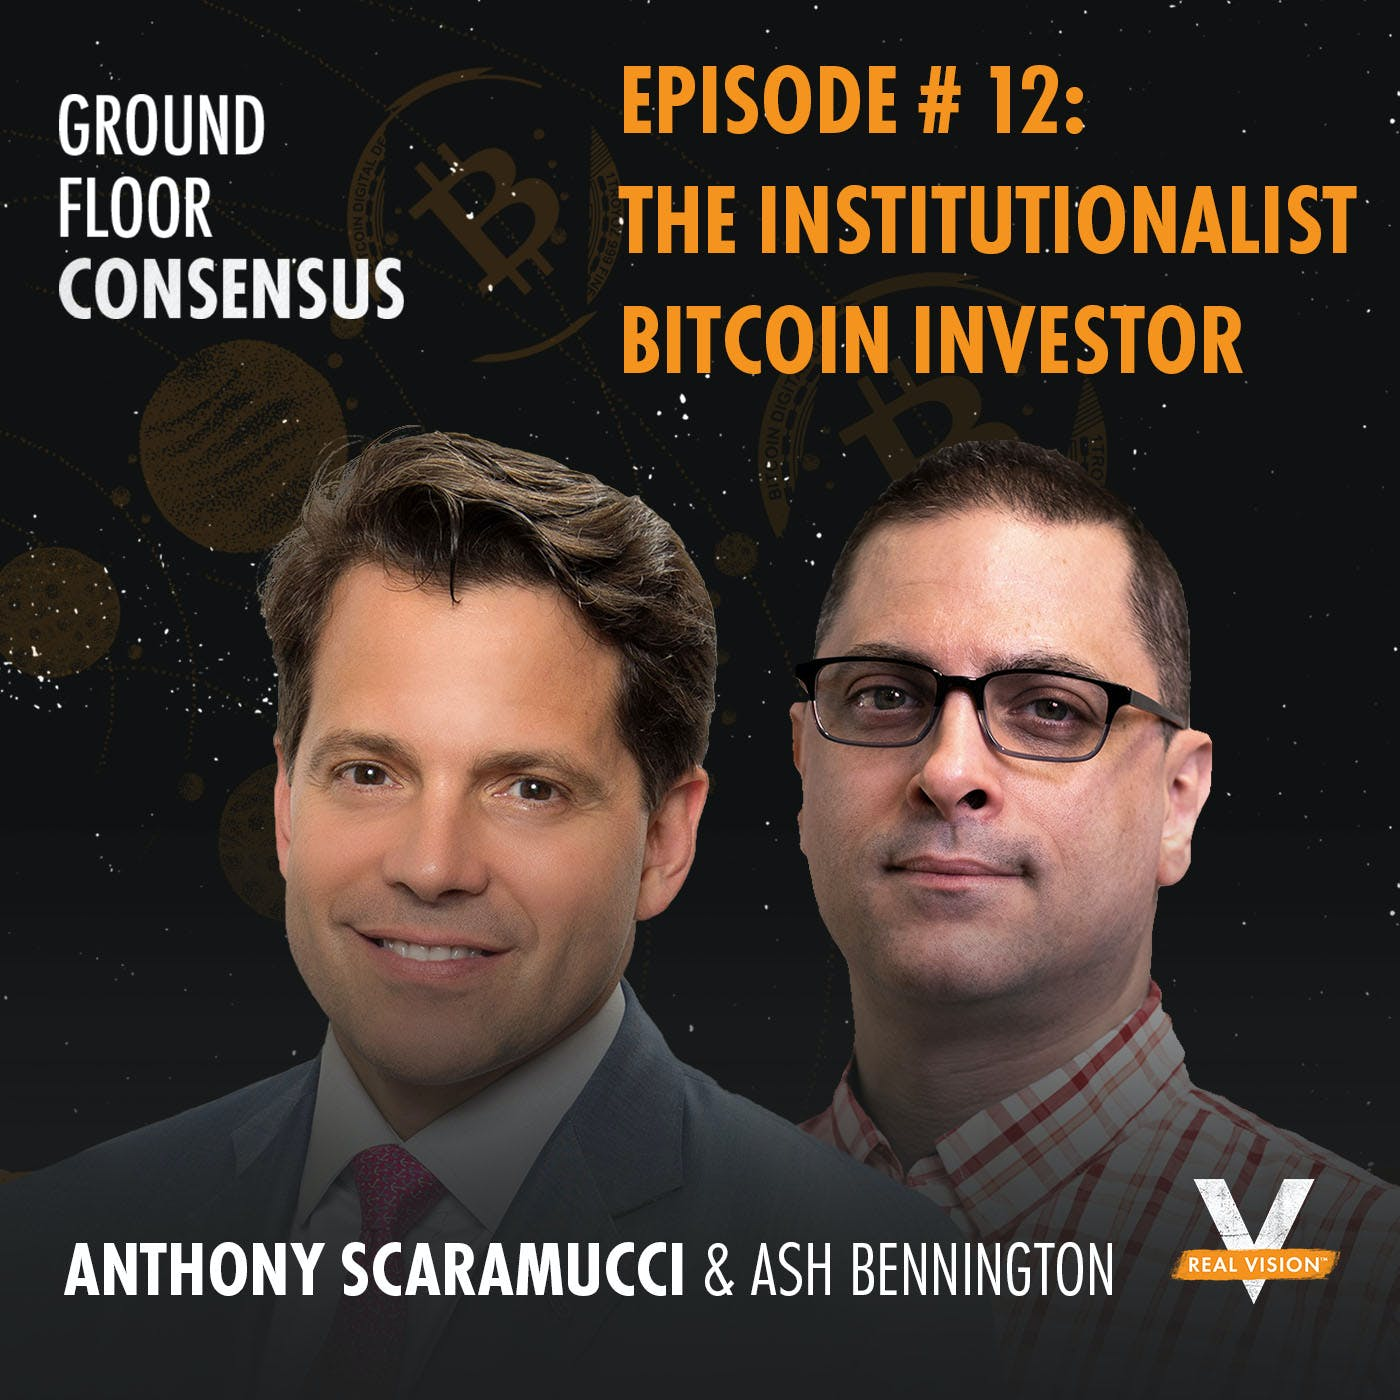 GFC012: The Institutionalist Bitcoin Investor( w/ Anthony Scaramucci )